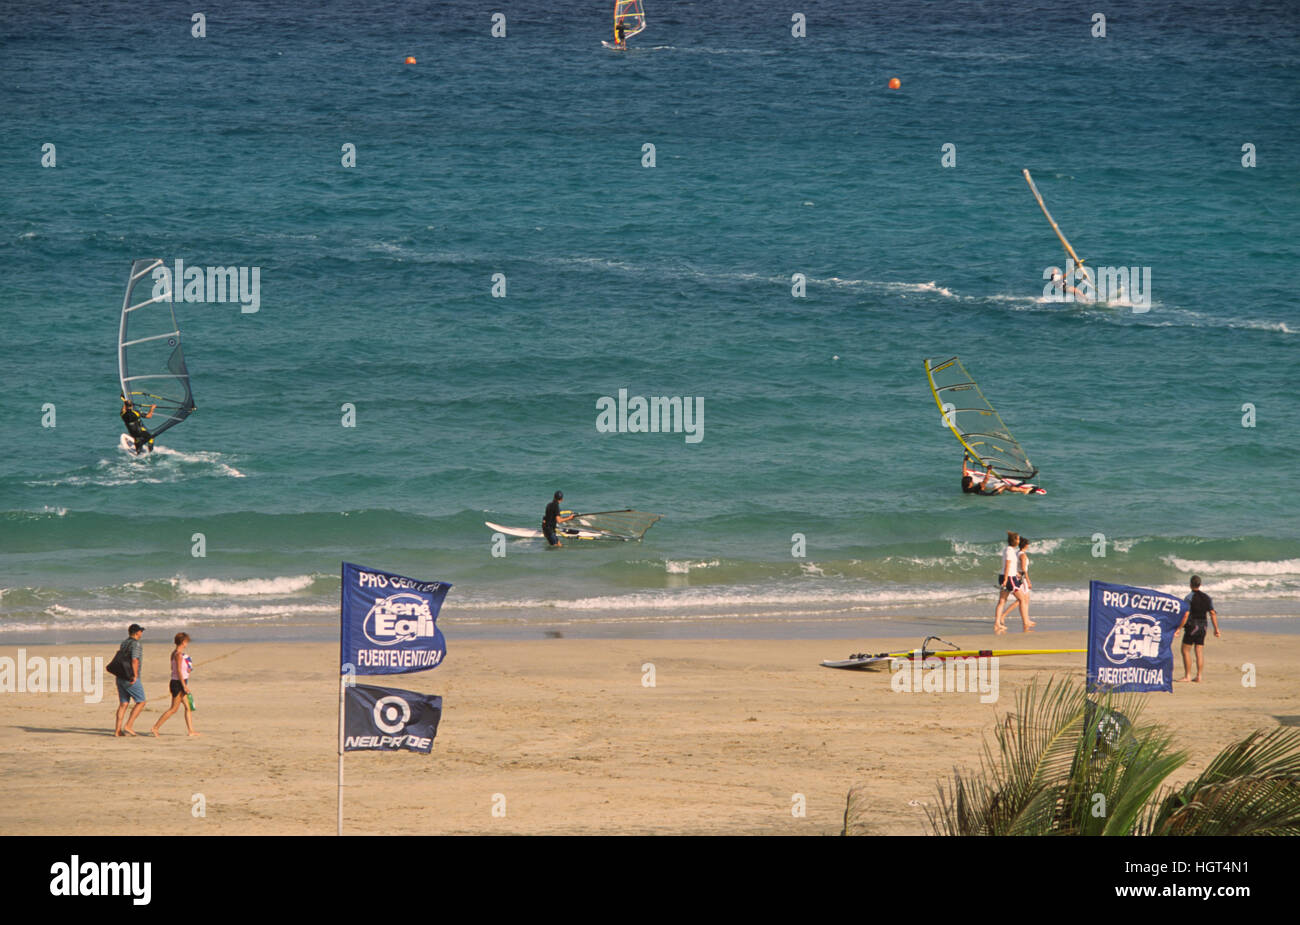 Surfers on the Costa Calma, Playa Barca, Fuerteventura, Canary Islands, Spain - Stock Image